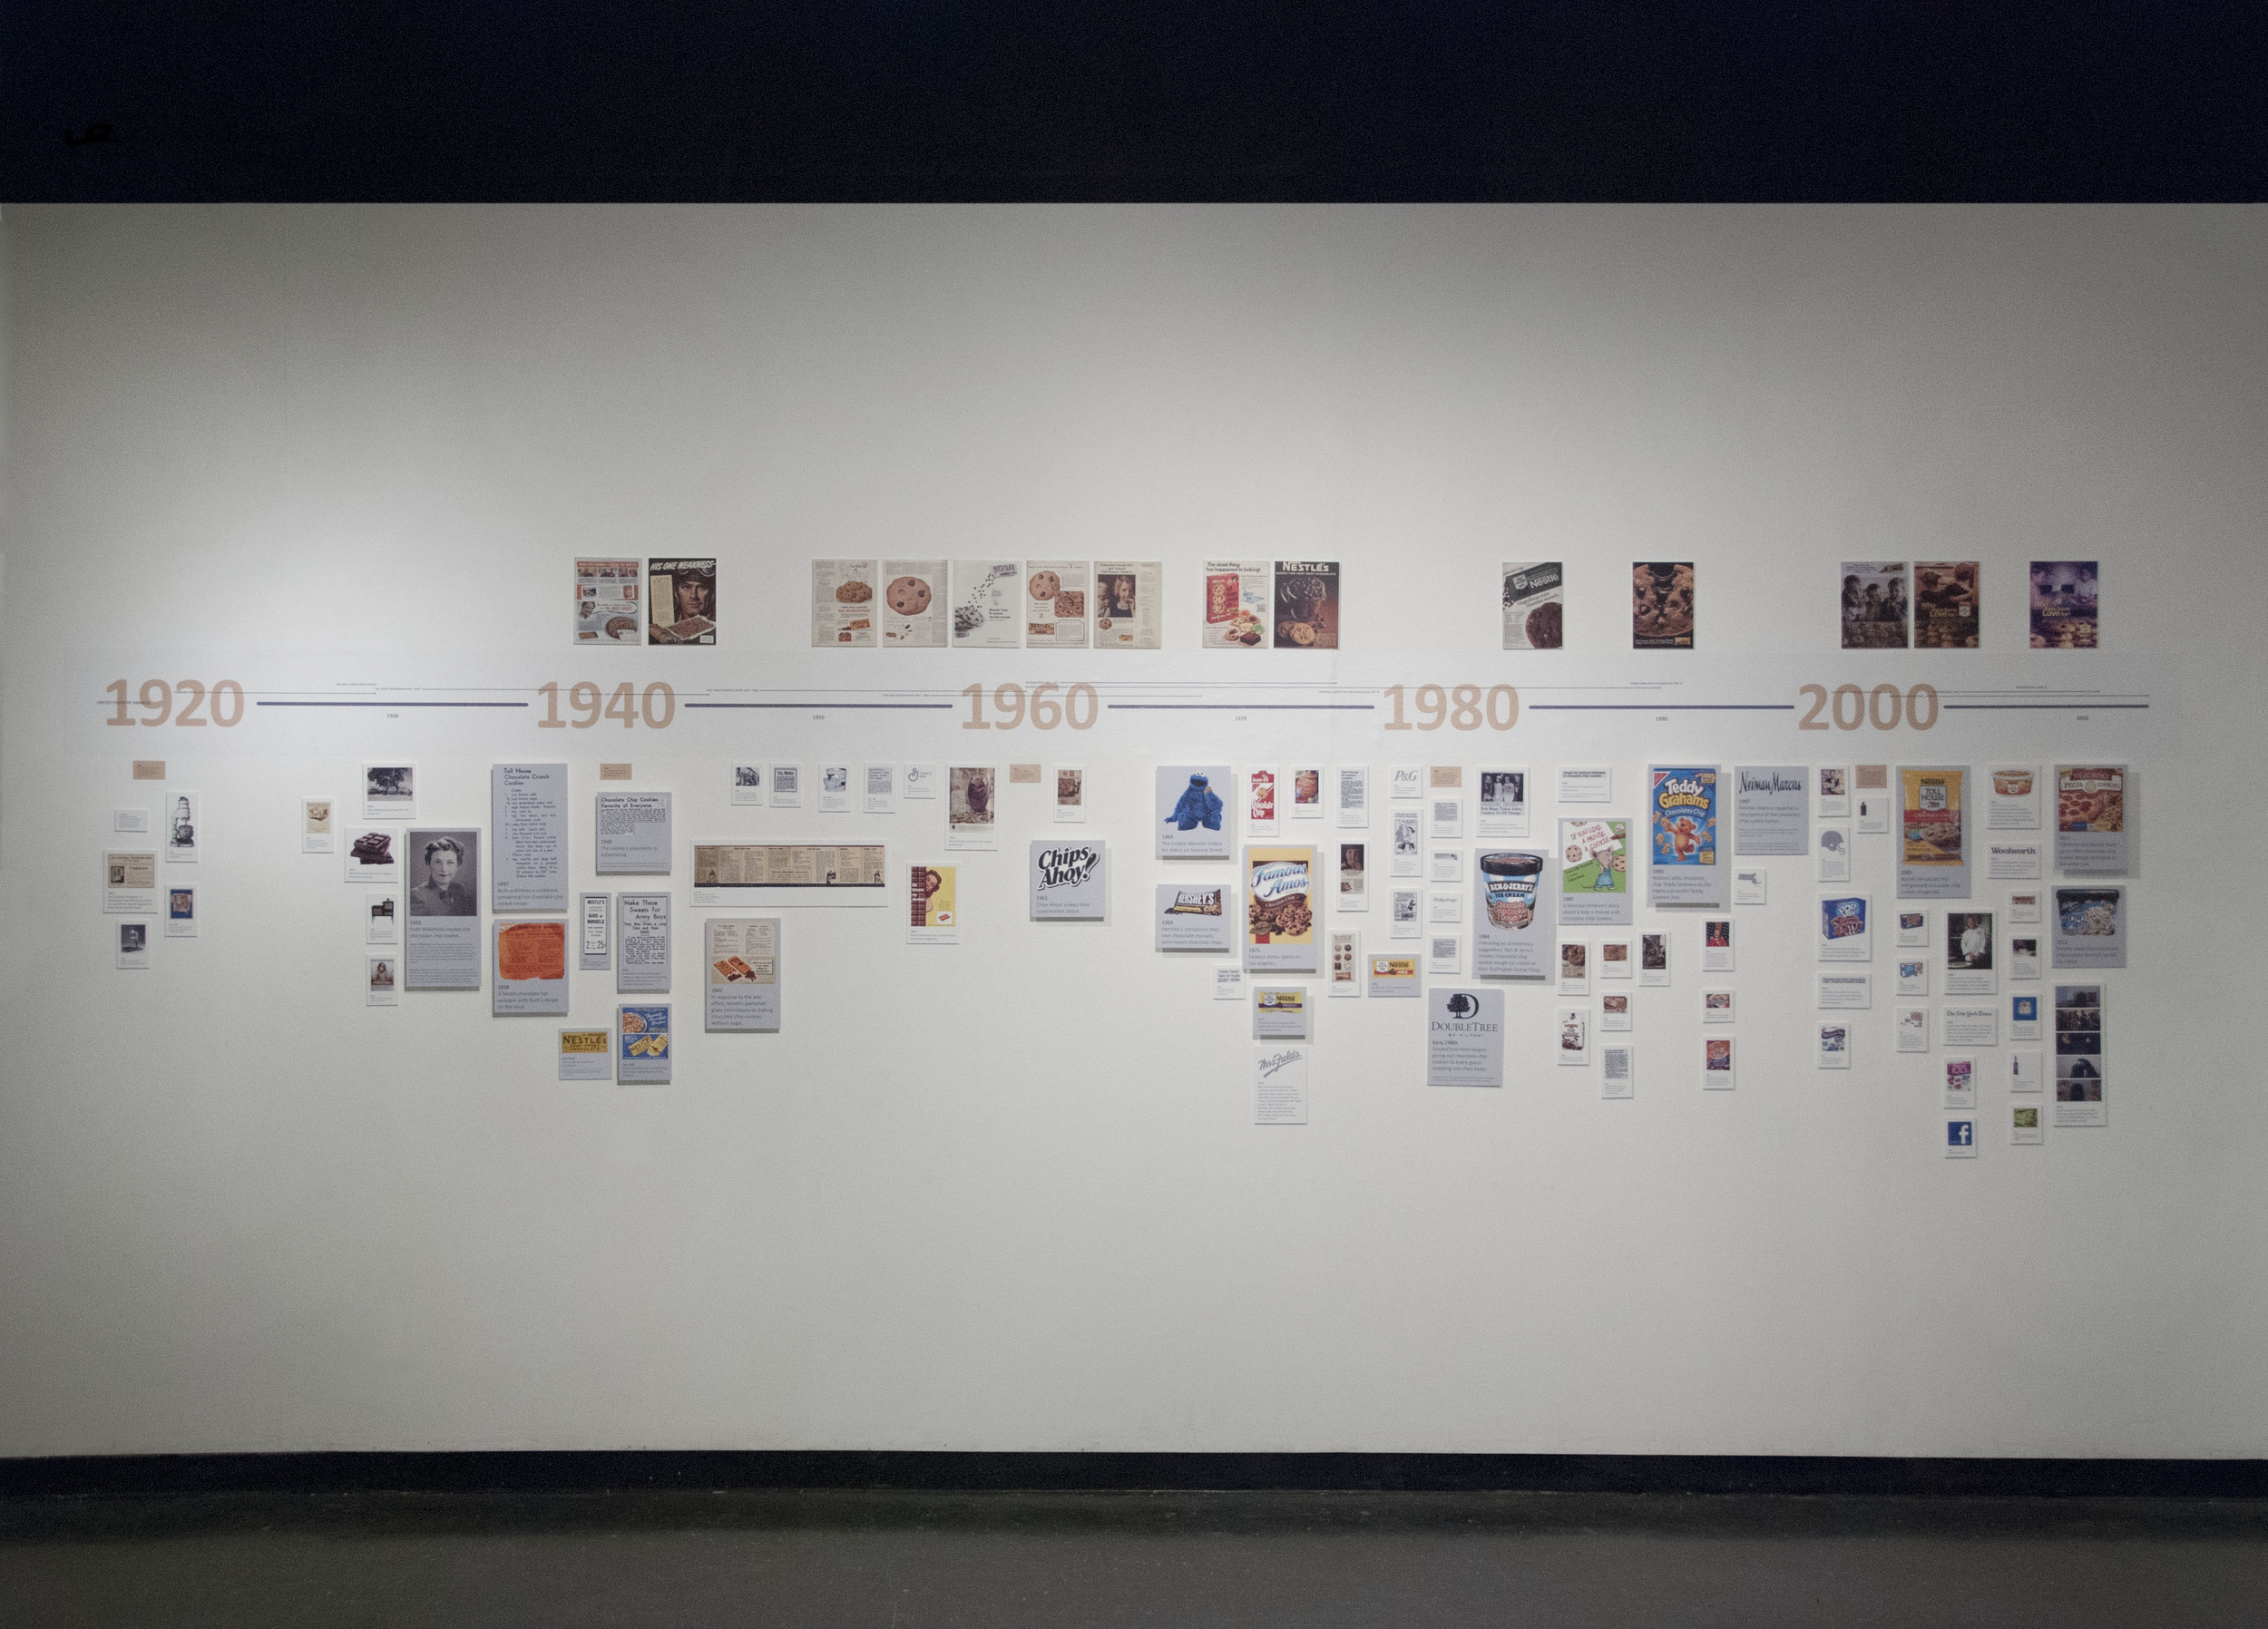 Timeline  as presented in my exhibition.